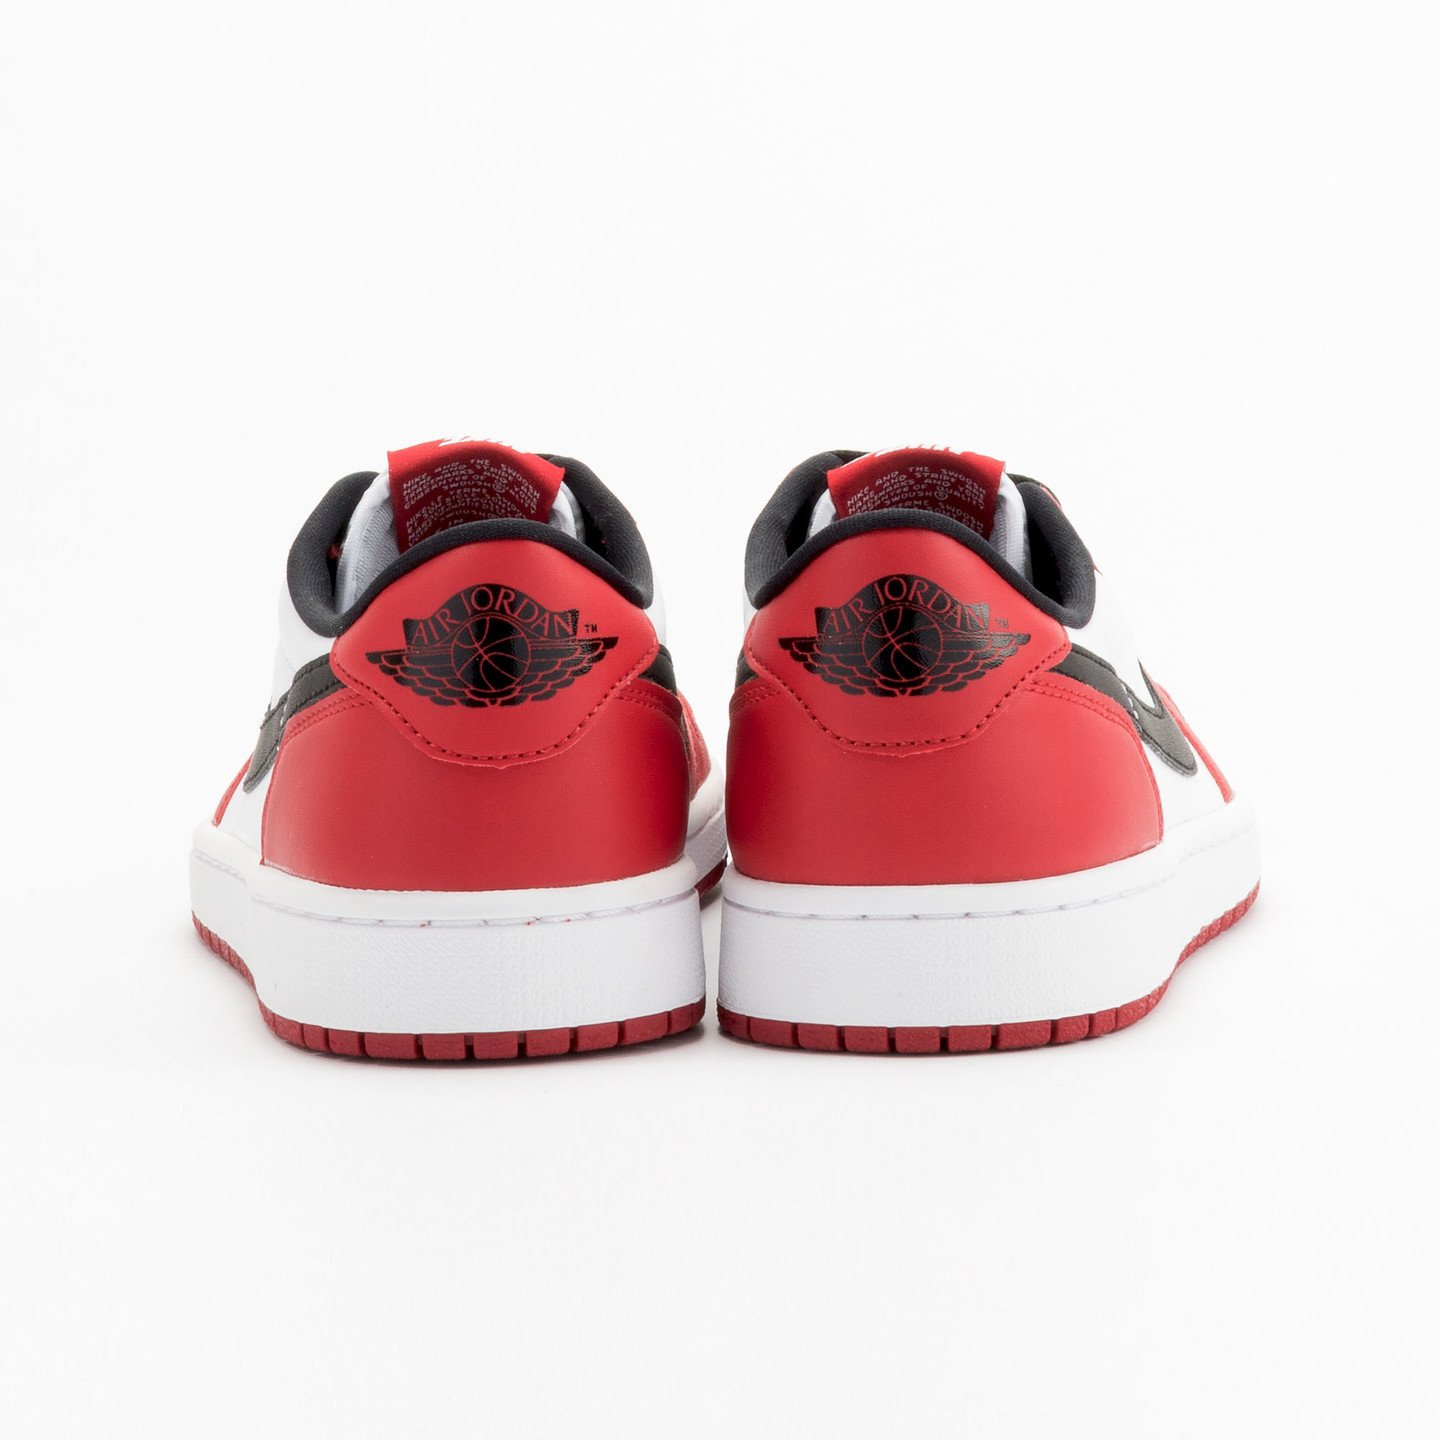 Nike Air Jordan 1 Retro Low OG 'Chicago' Varsity Red / Black / White 705329-600-42.5